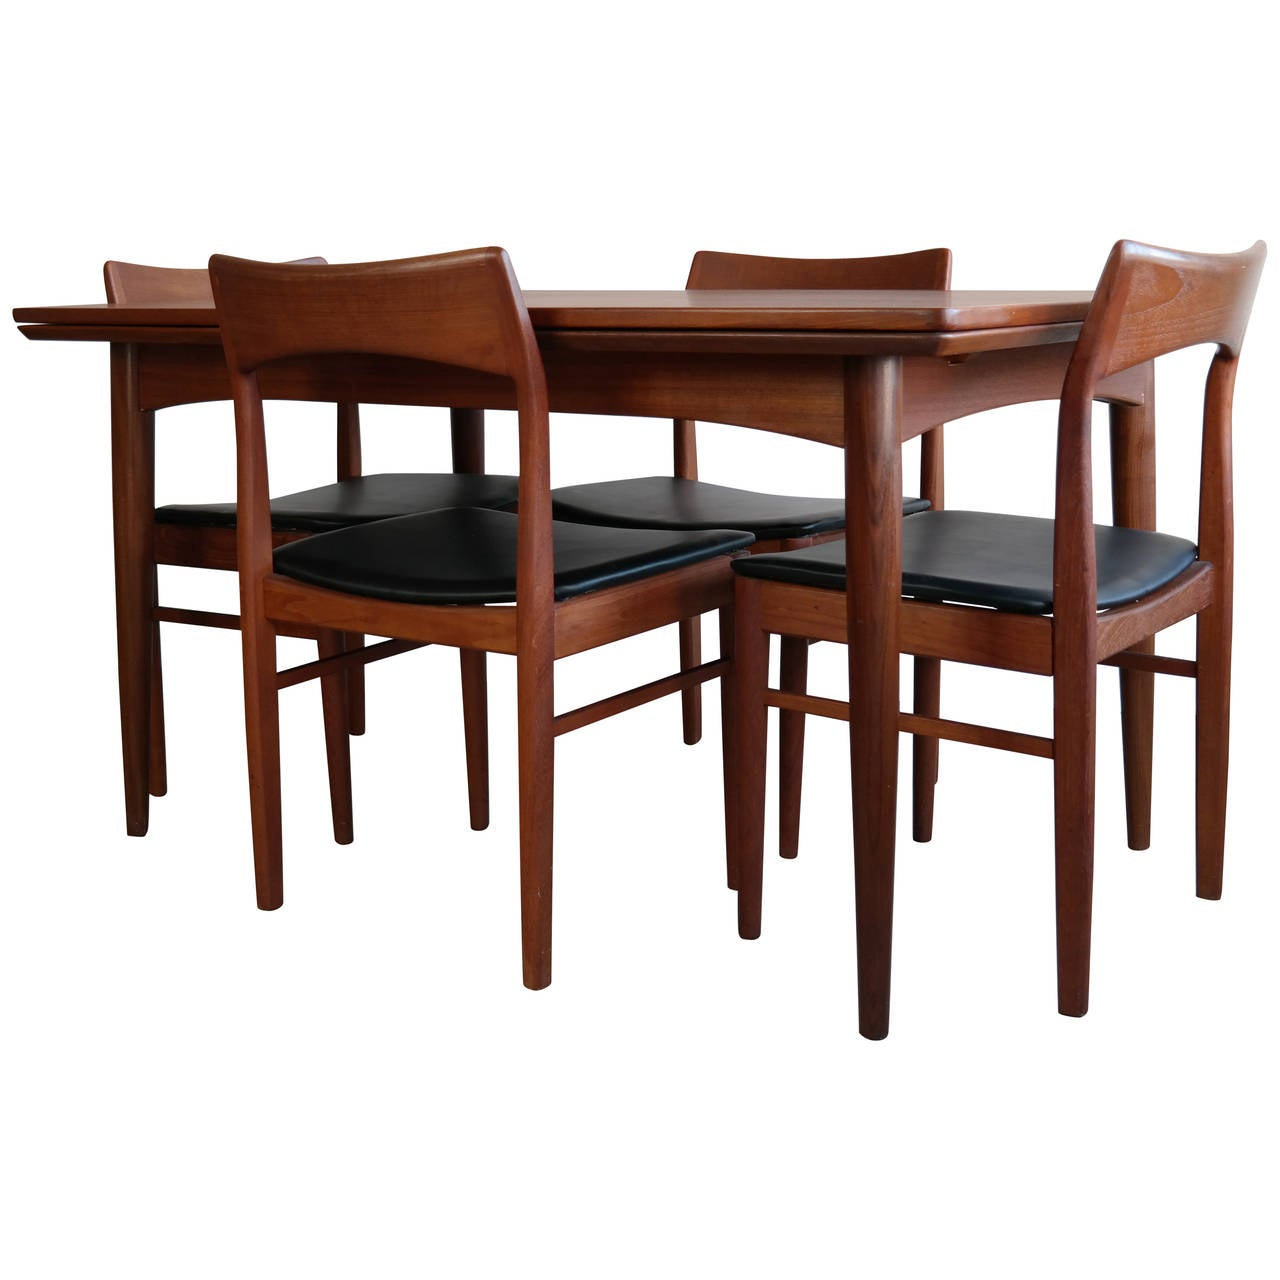 Danish modern dining set in teak at 1stdibs for Modern dining room table sets